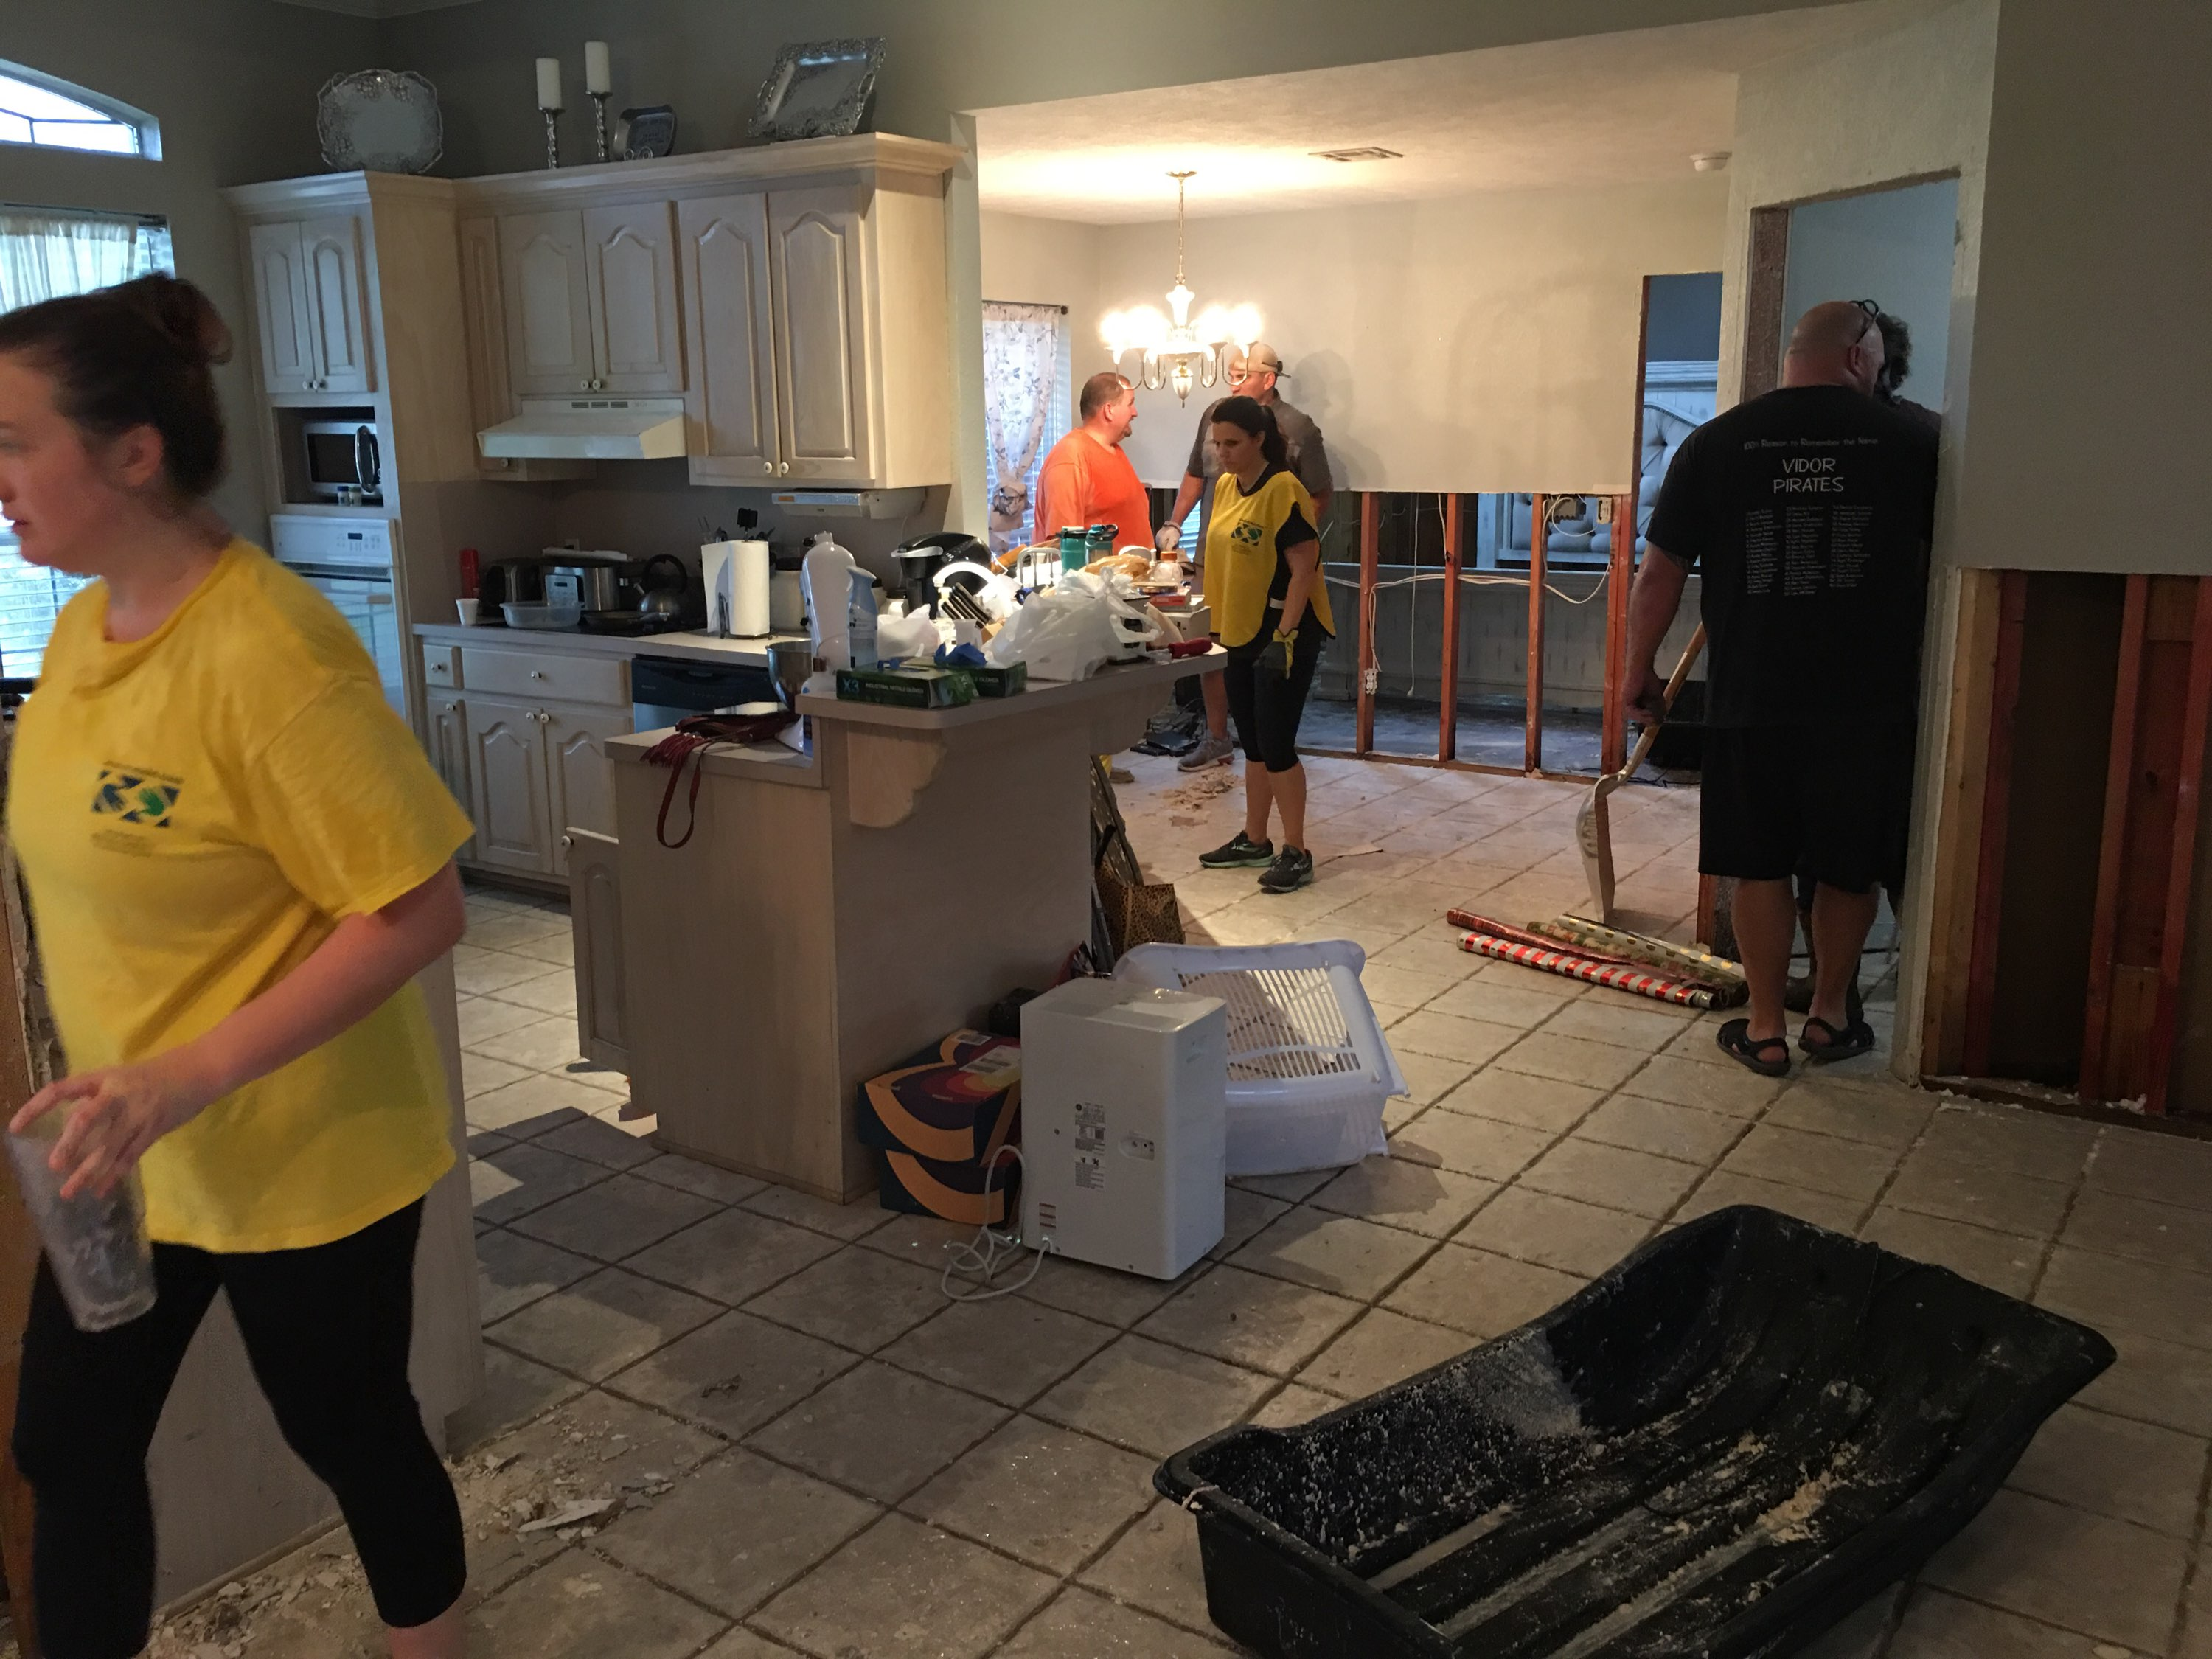 Church members and volunteers wearing Helping Hands t-shirts and vests help to clean up homes in the greater Houston, Texas, area with flood damage from Tropical Storm Imelda, which made landfall on Sept. 19, 2019.